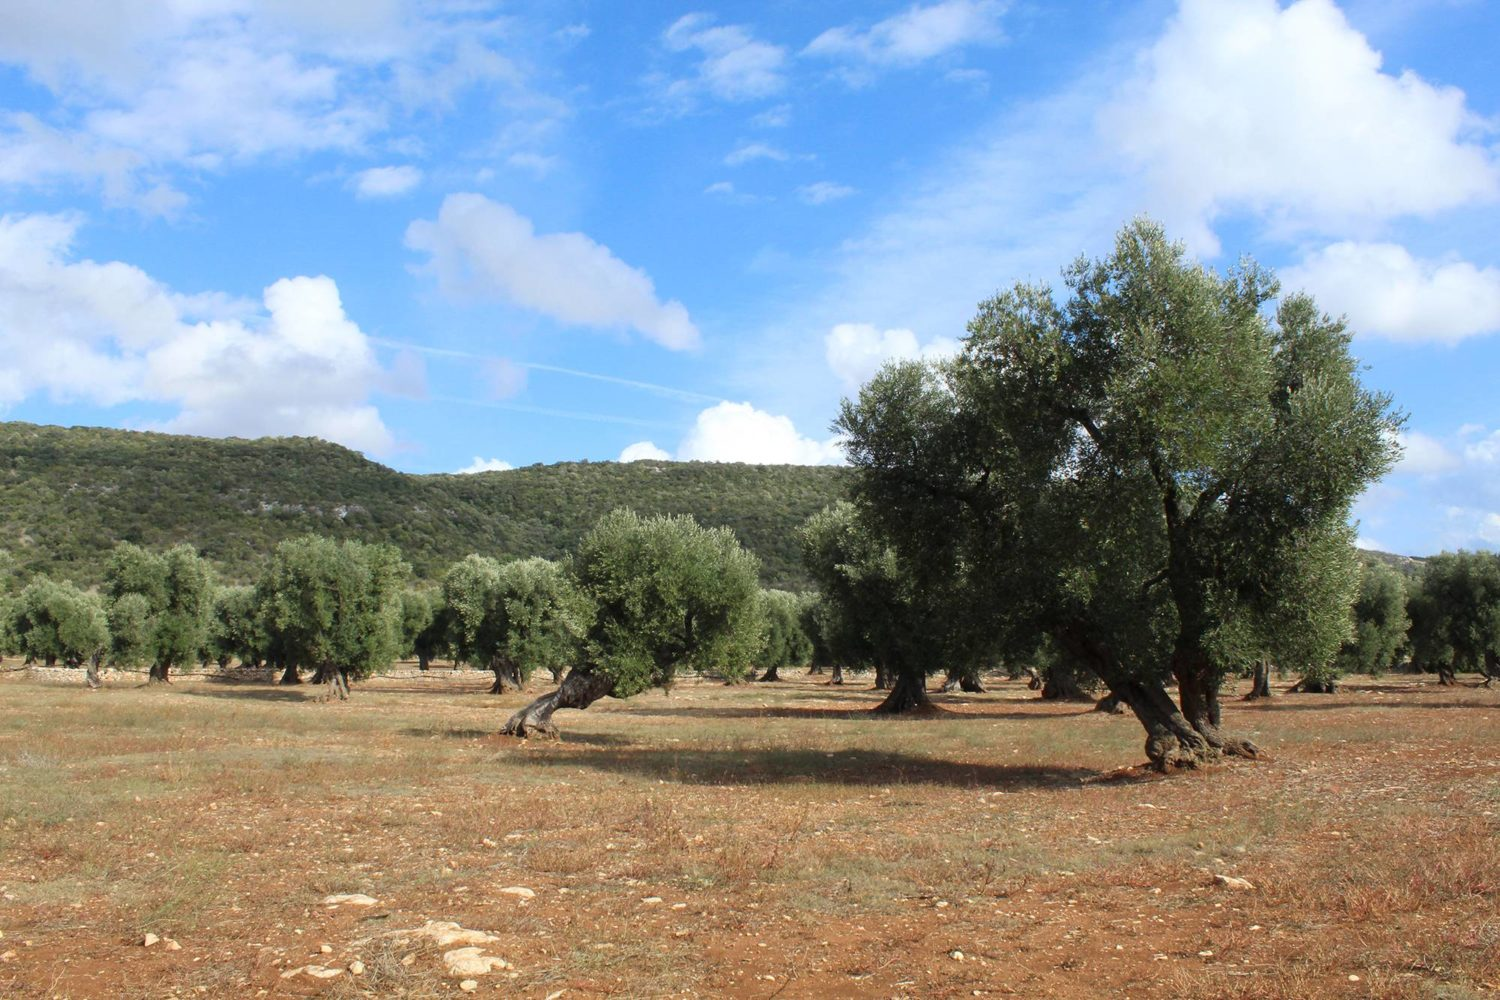 Olive oil production in Puglia